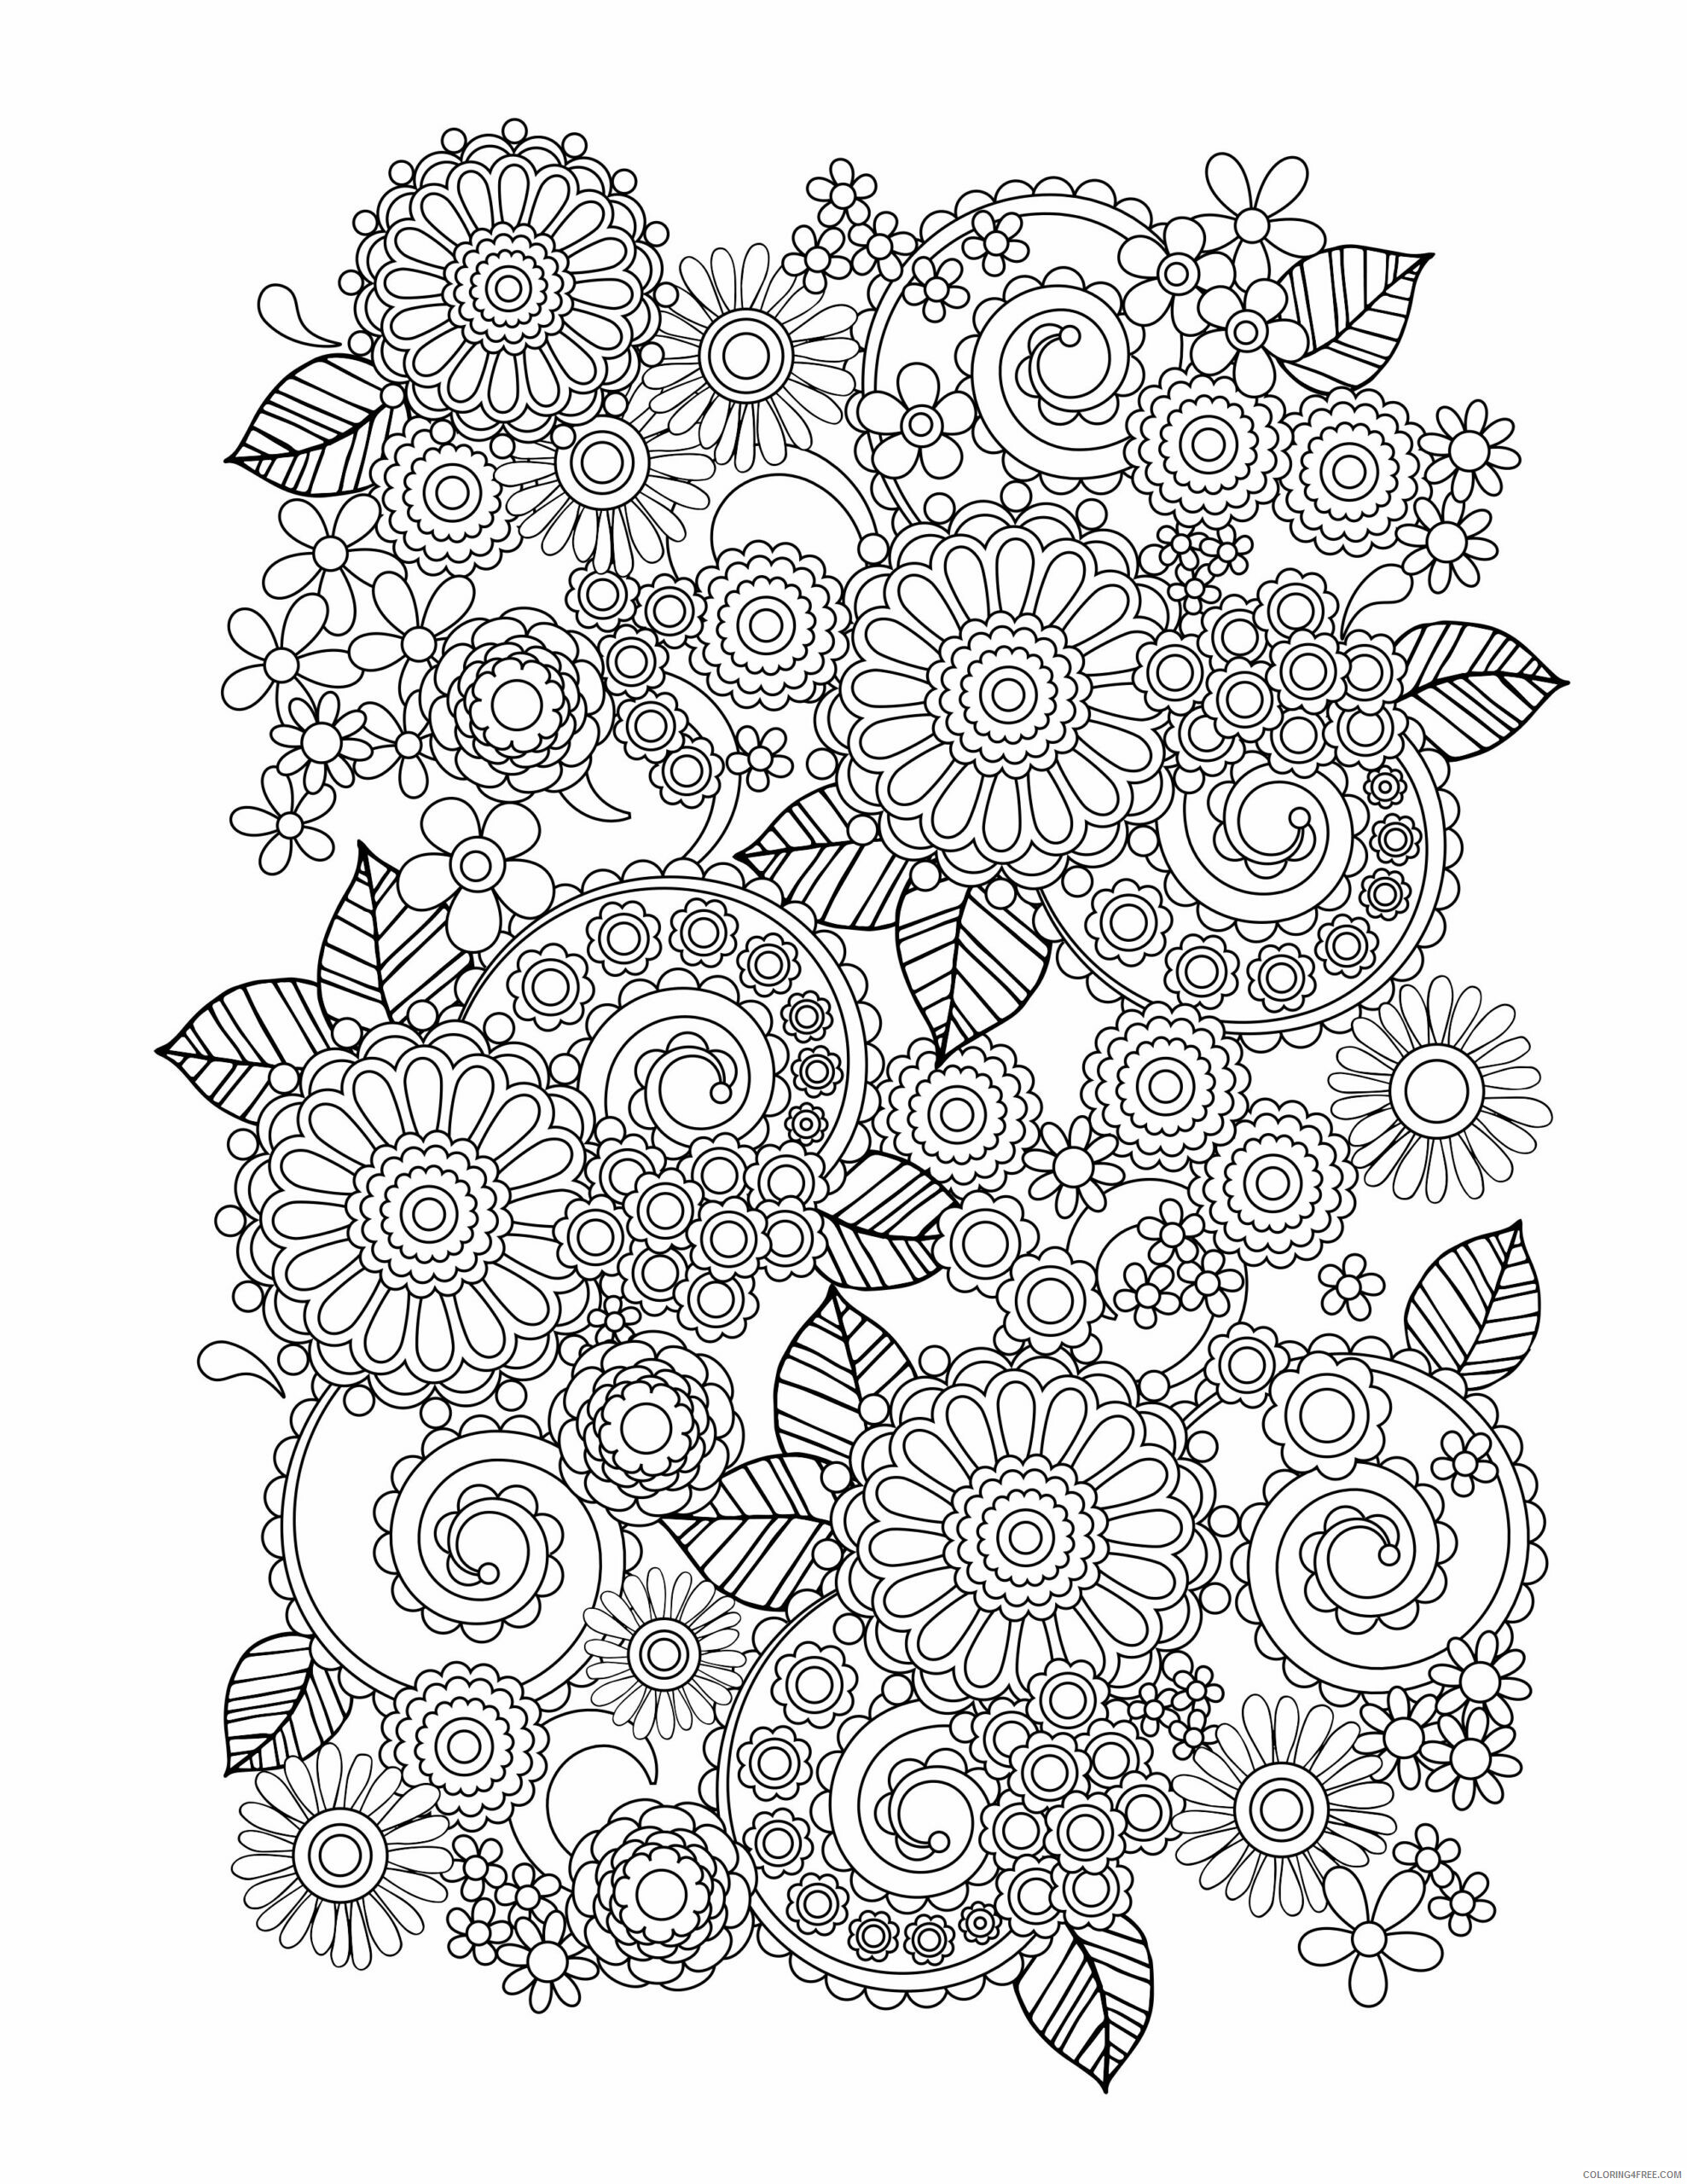 Adult Floral Coloring Pages Flower for Adults Frees Printable 2020 354 Coloring4free